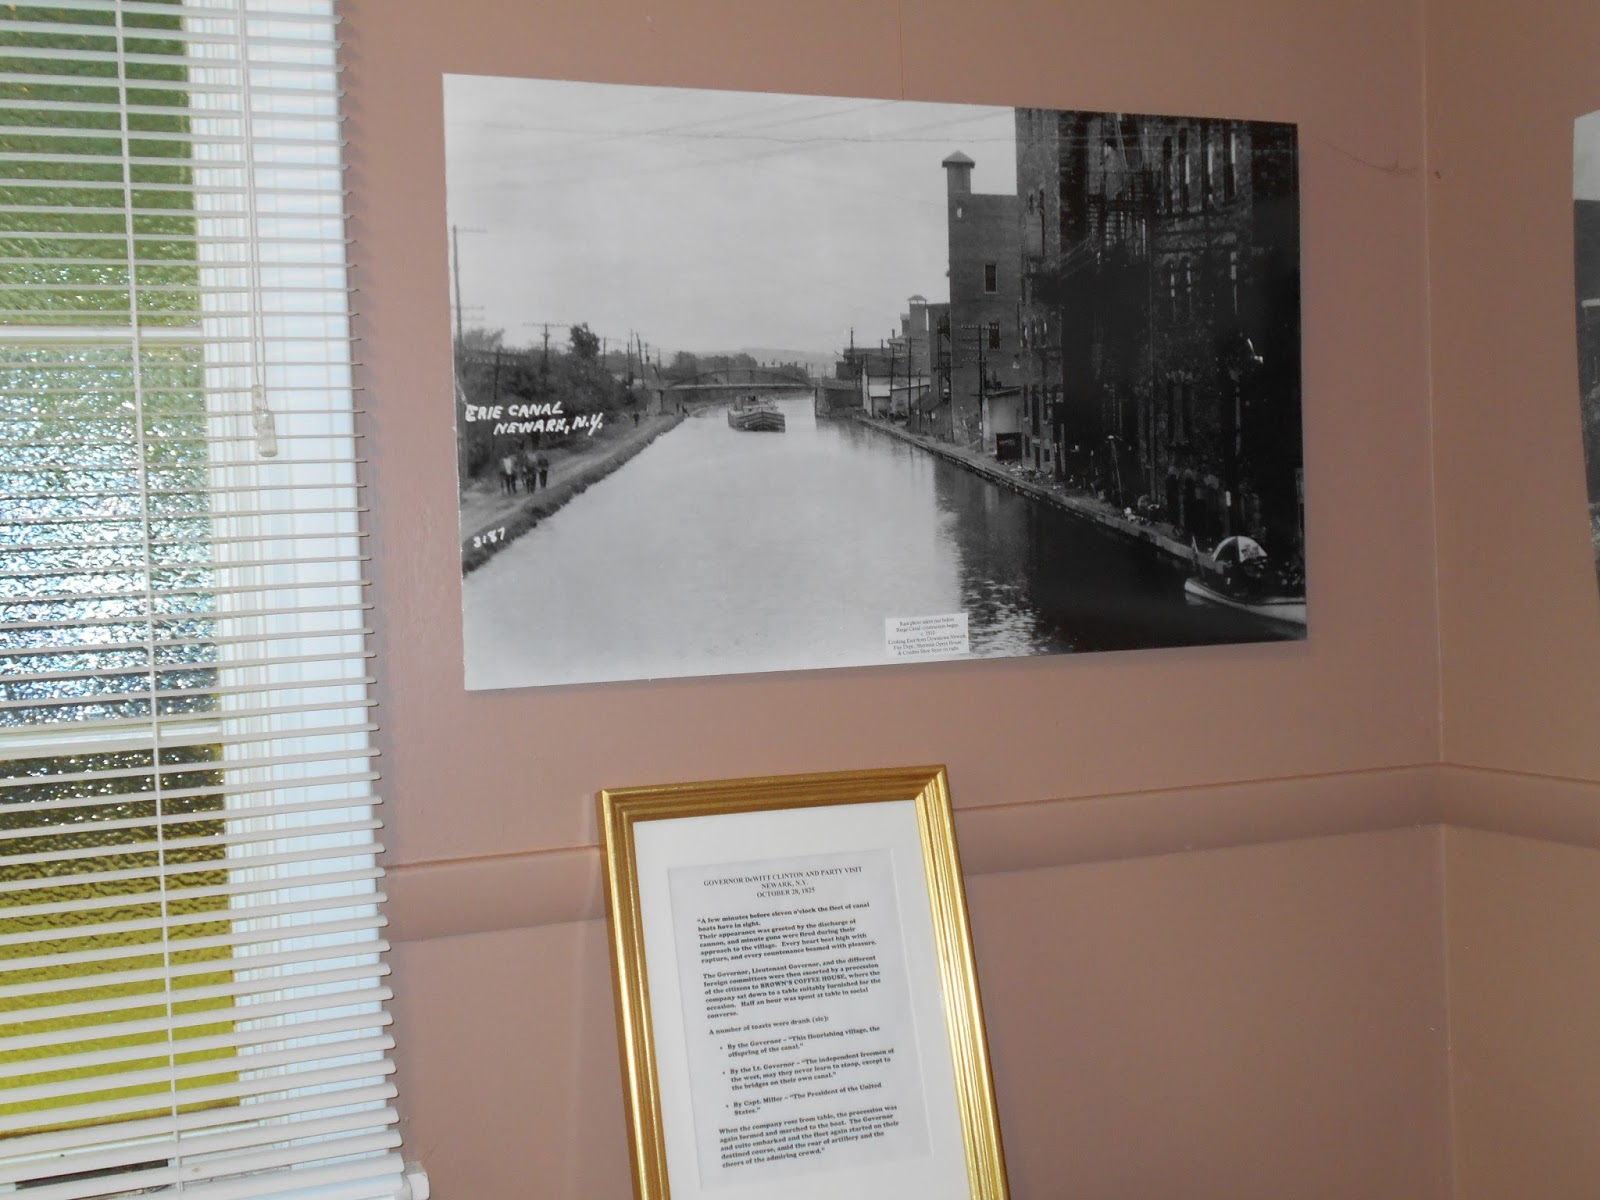 the growth of the nys business after the construction of the erie canal Pittsford (village), new york (now new york state route 31) pittsford grew rapidly after the opening of the erie canal in 1822 and was incorporated as a.